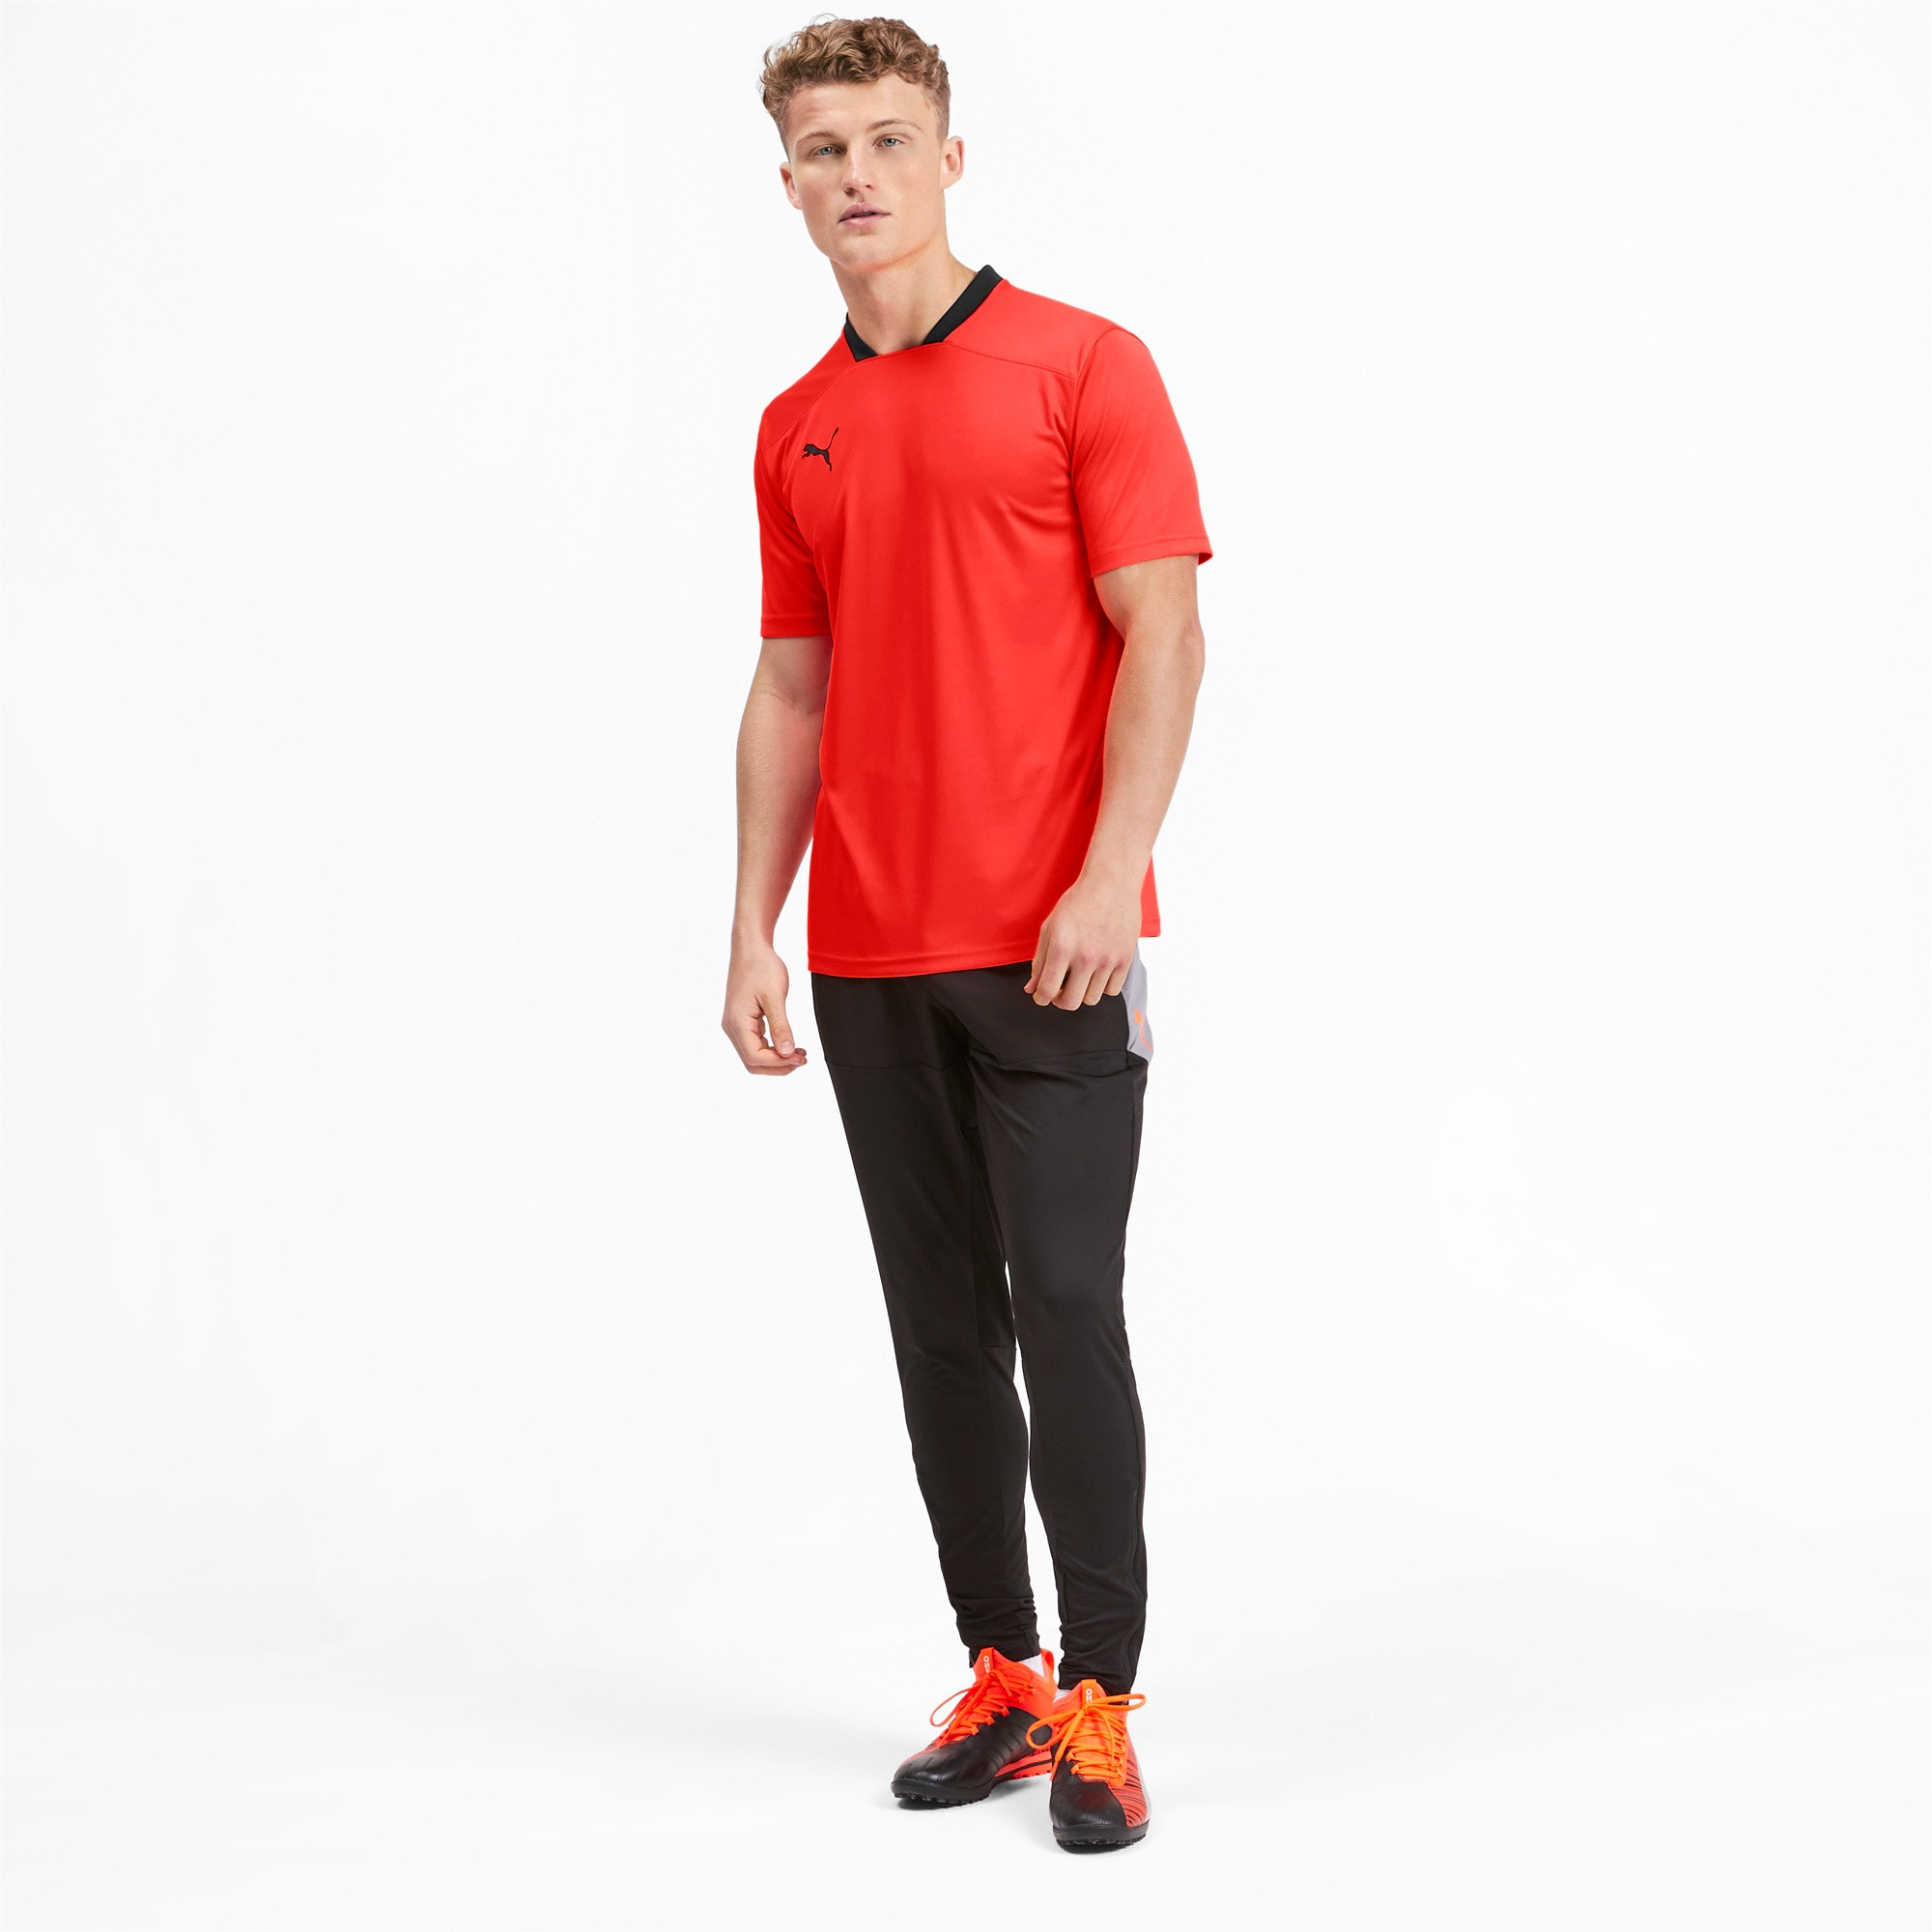 Thumbnail 3 of Herren T-Shirt, Nrgy Red-Puma Black, medium